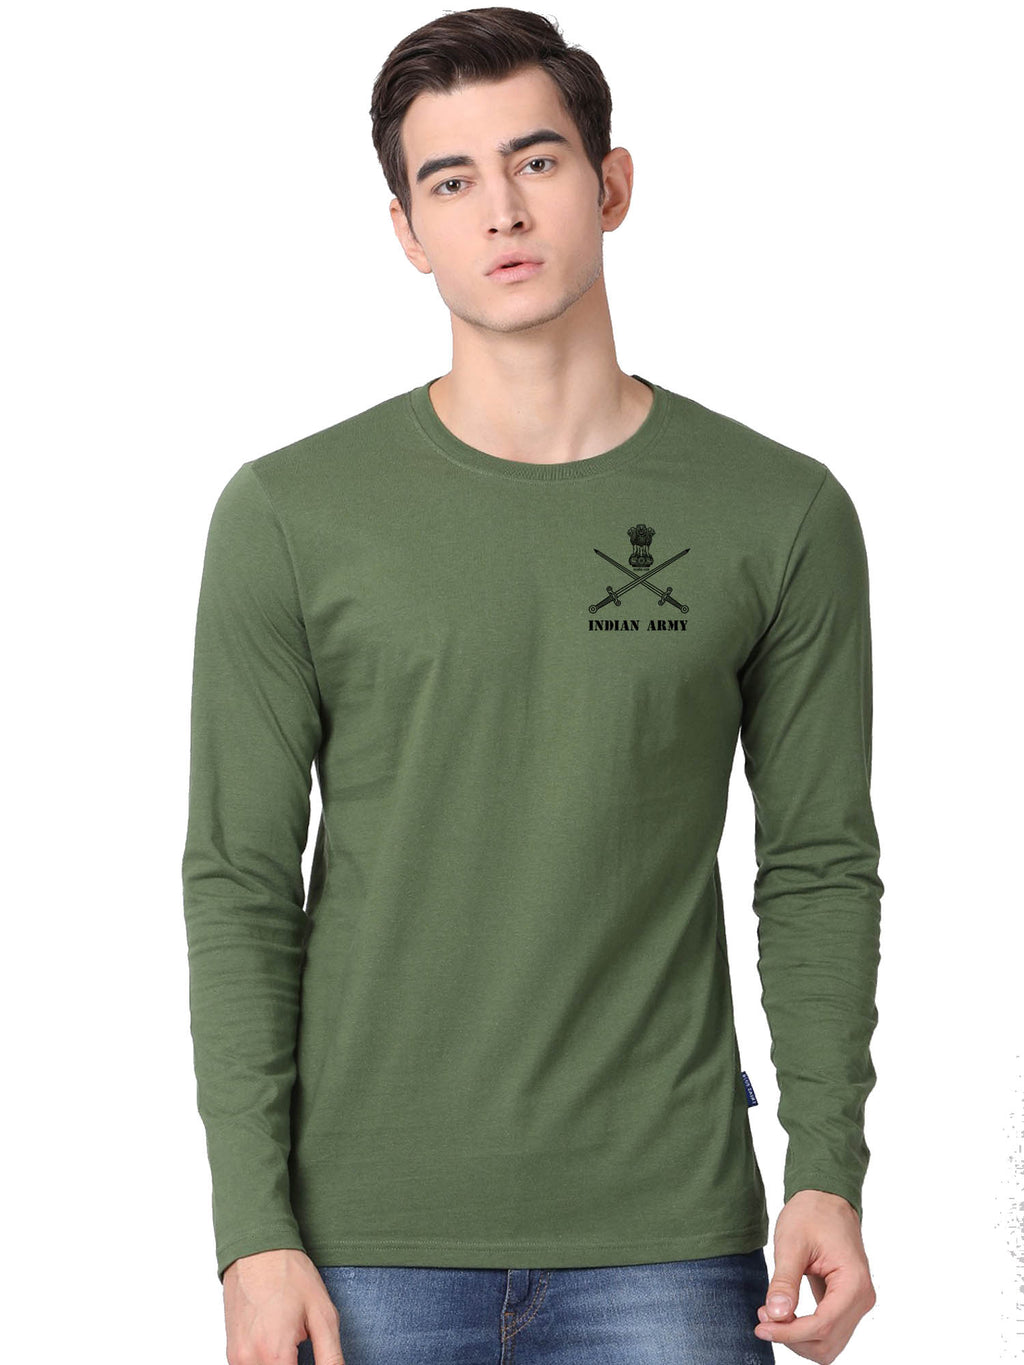 Indian Army Olive Green Full Sleeve Tshirt for Men by Bluehaat